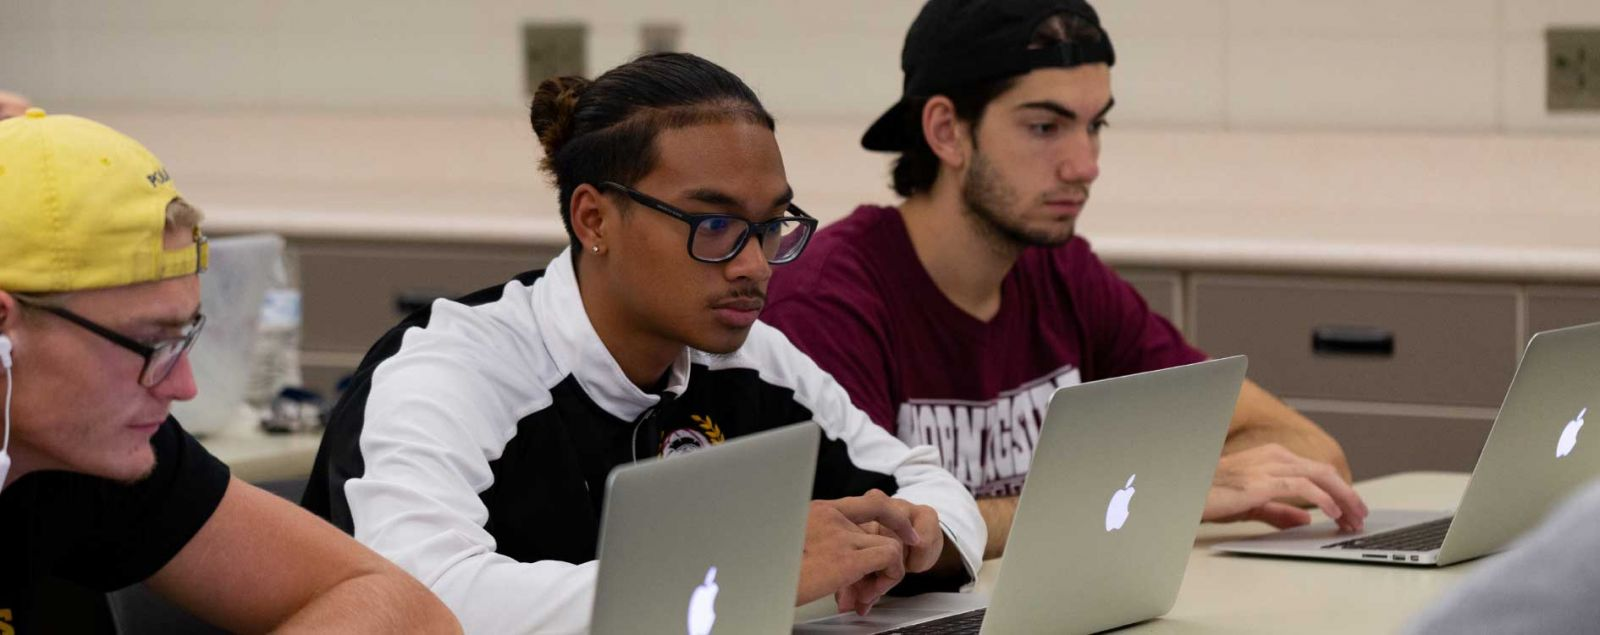 Student with Airpods on Laptop